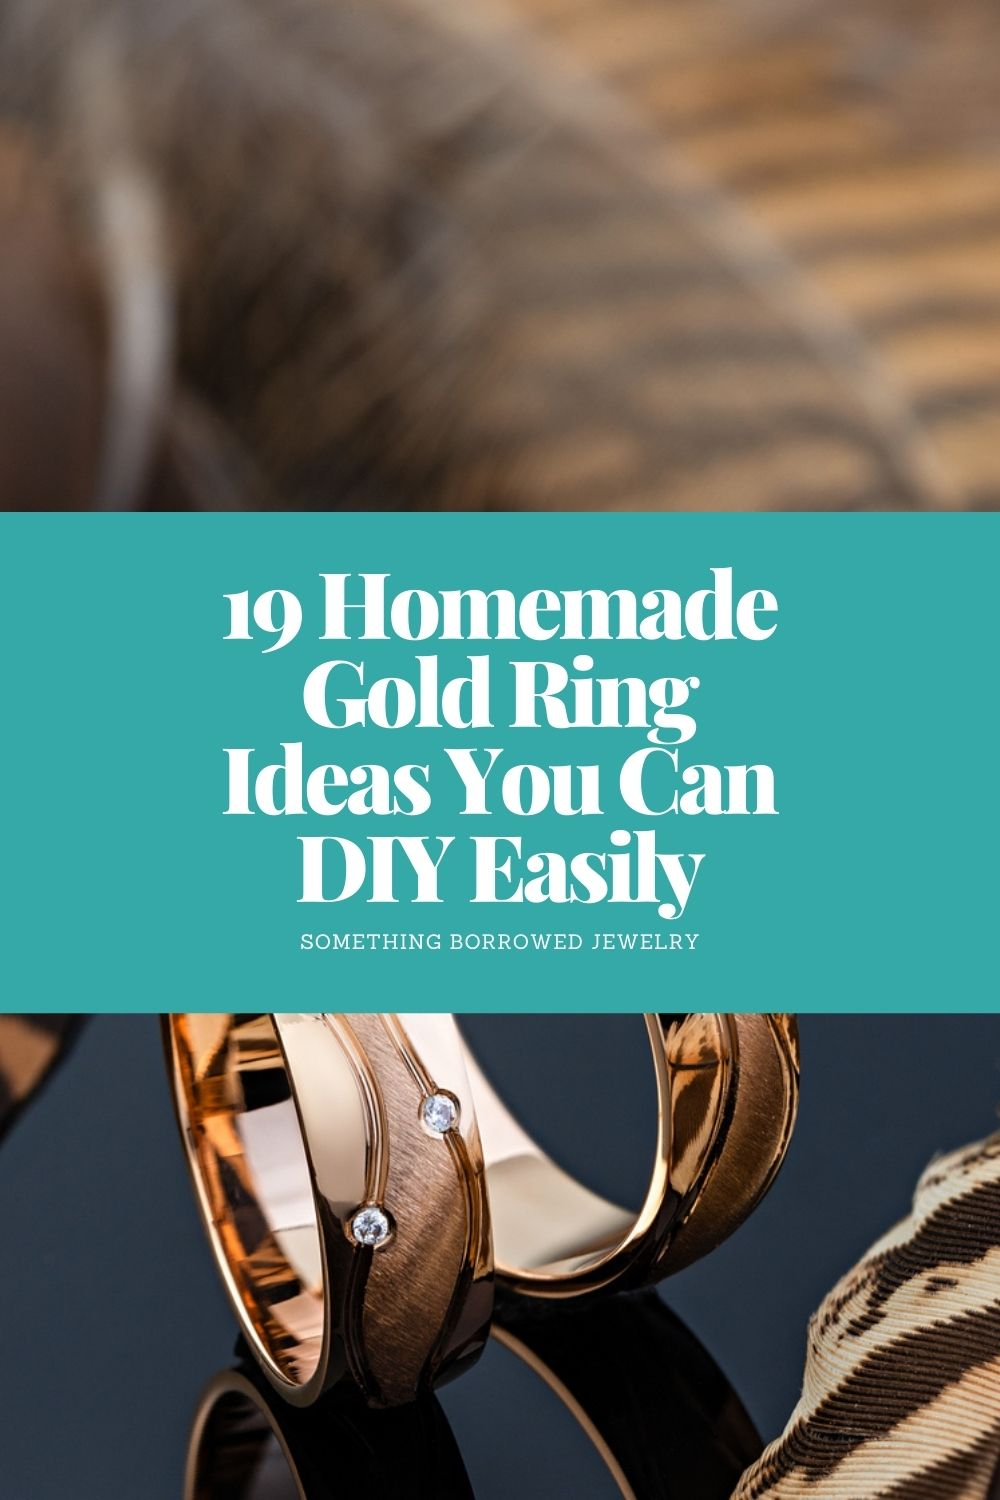 19 Homemade Gold Ring Ideas You Can DIY Easily pin 2